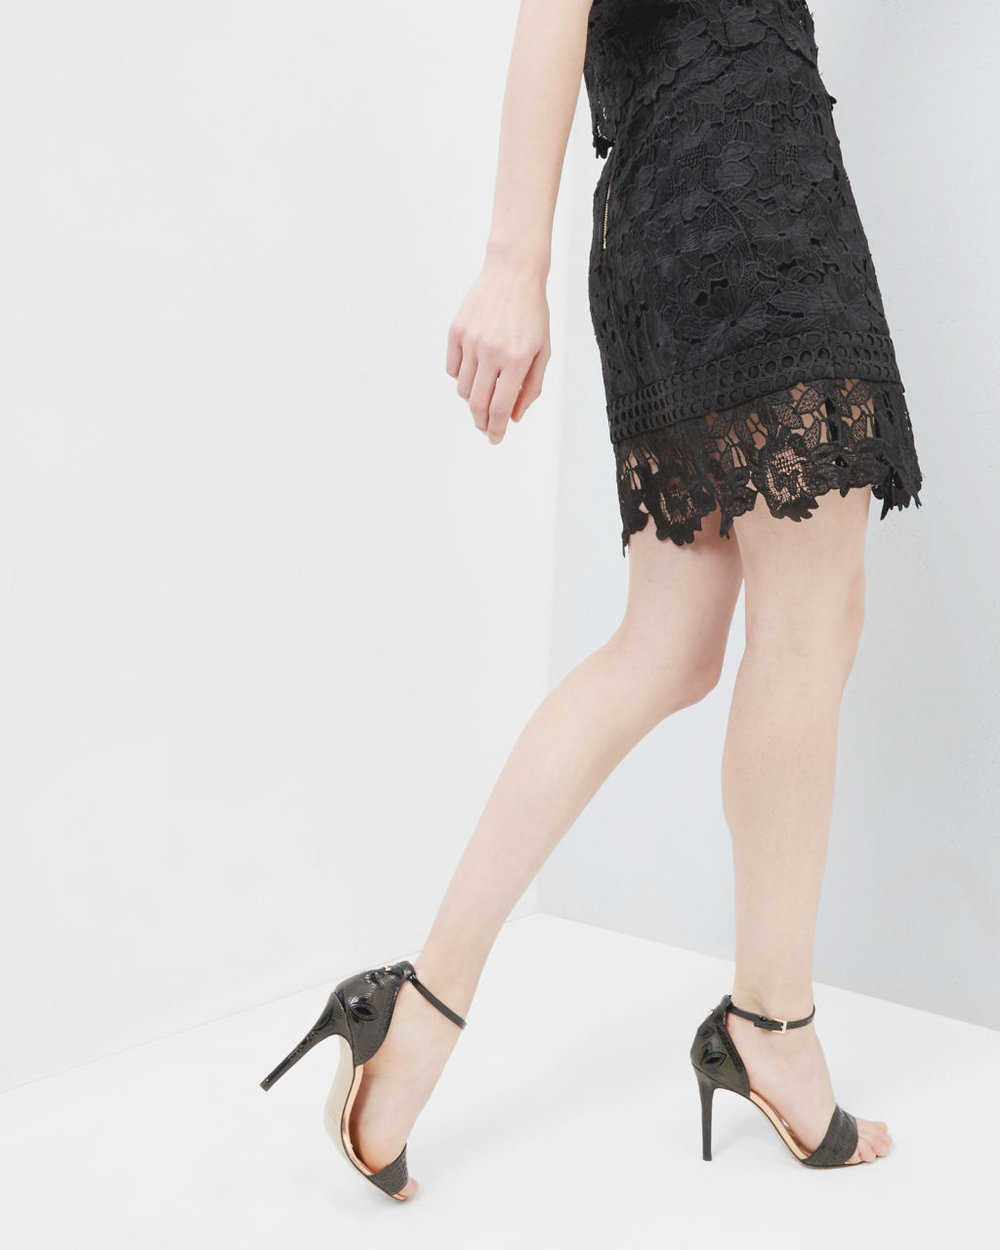 uk-Womens-Clothing-Skirts-BEAY-Lace-mini-skirt--Black-XS7W_BEAY_BLACK_4.jpg.jpg